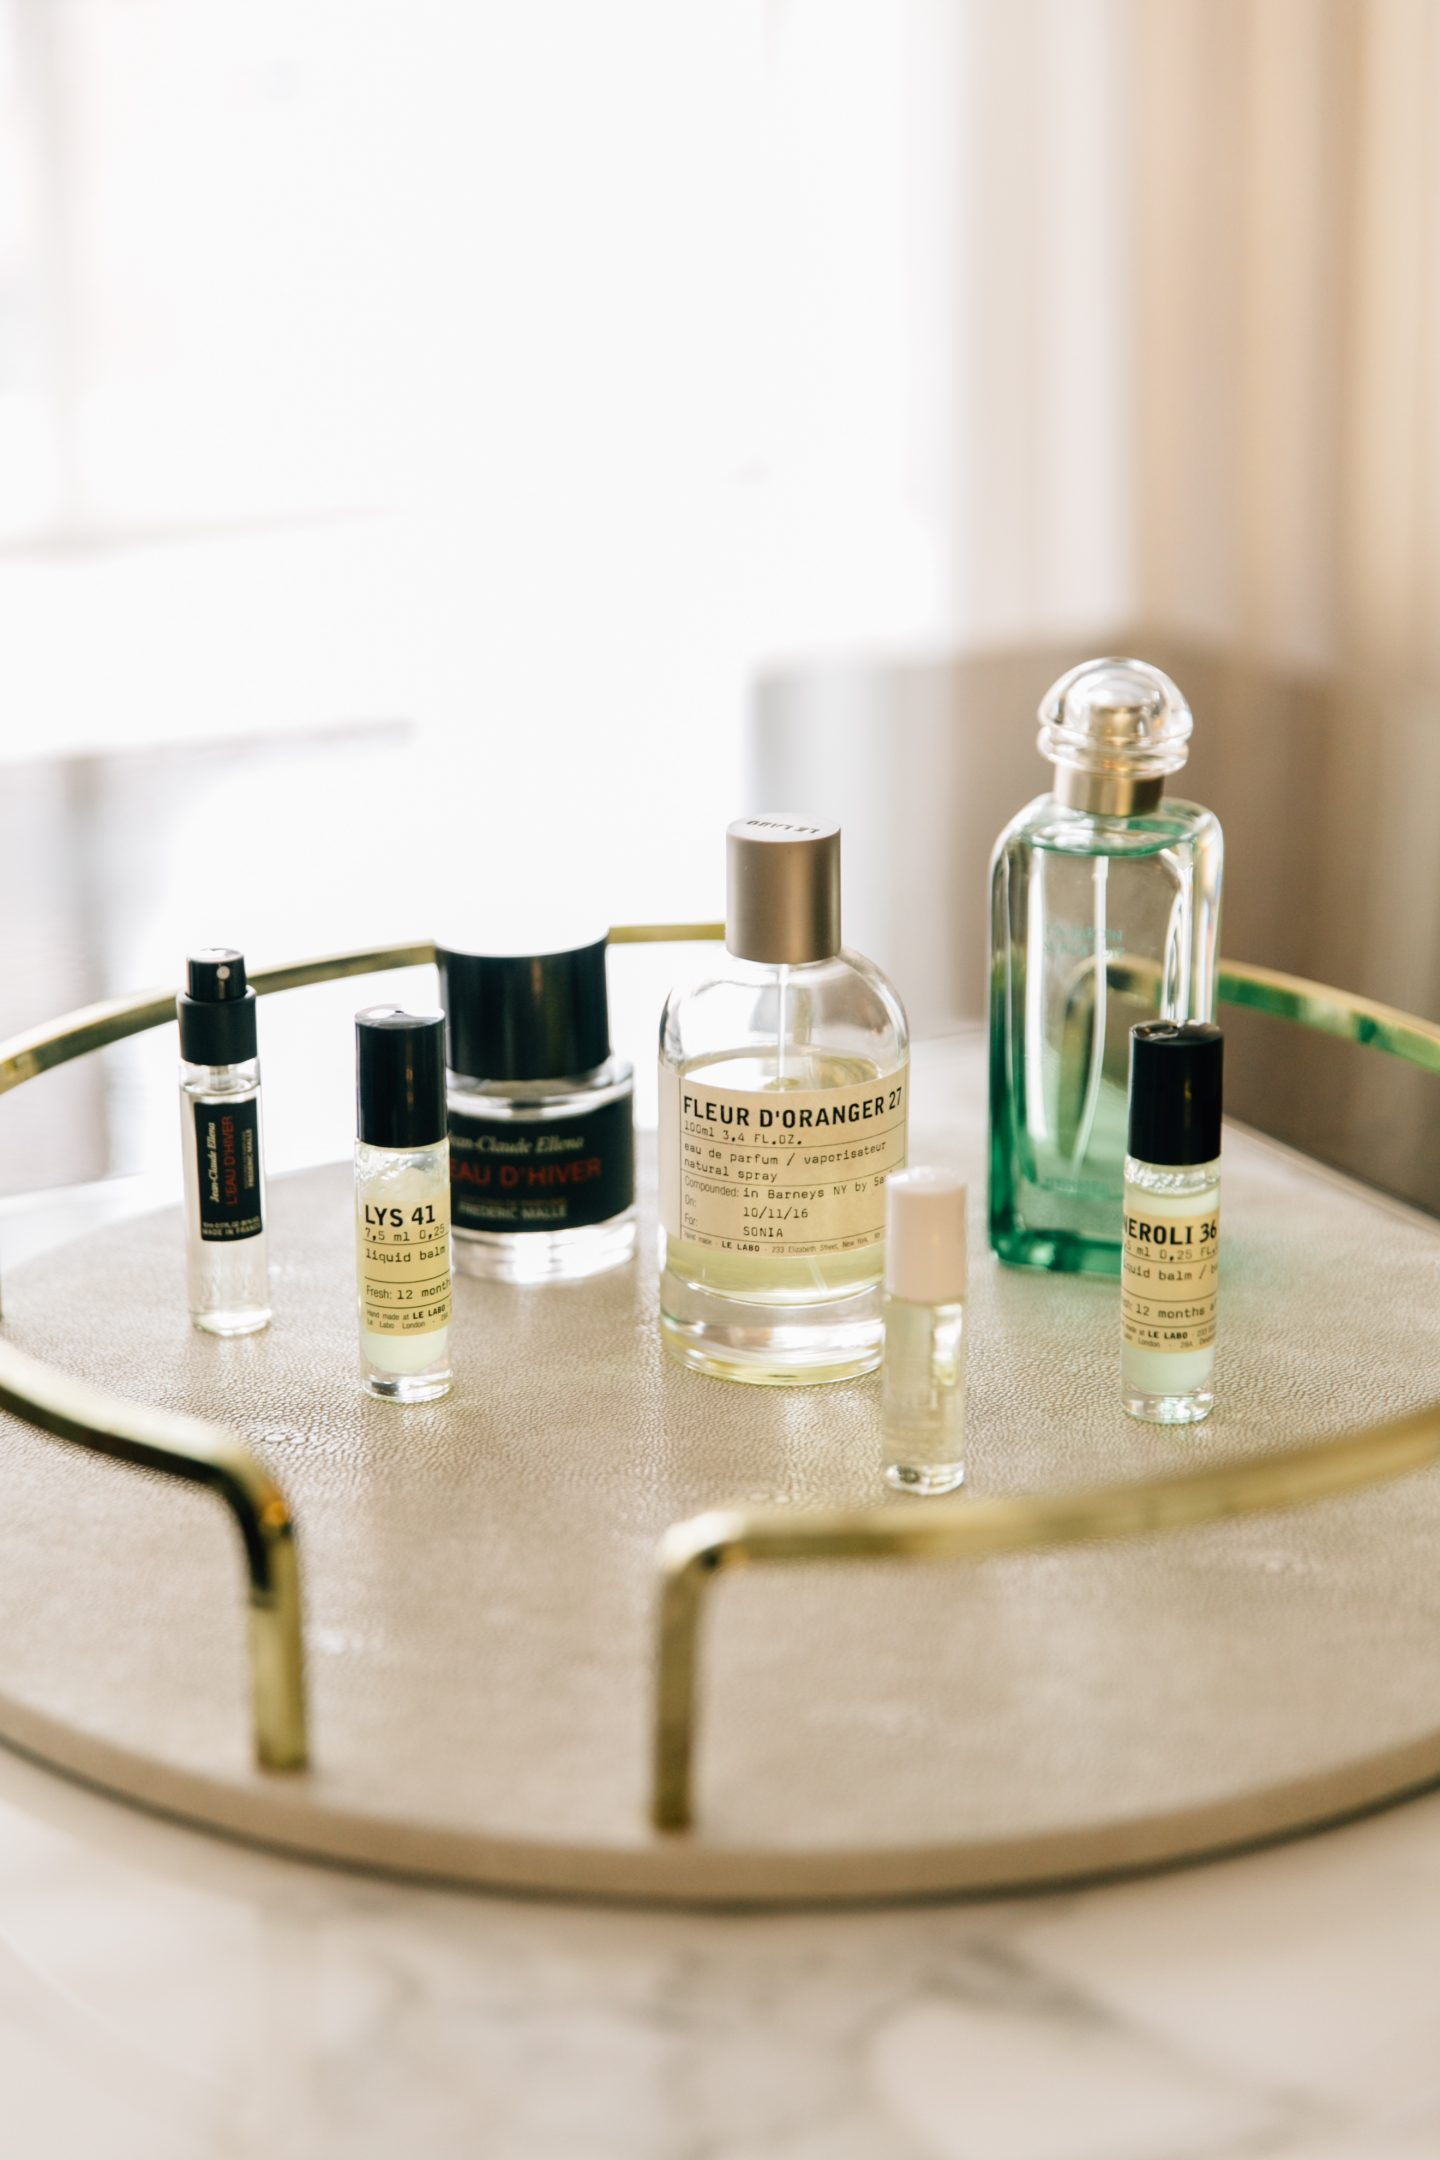 The Joy of Finding Your Signature Scent